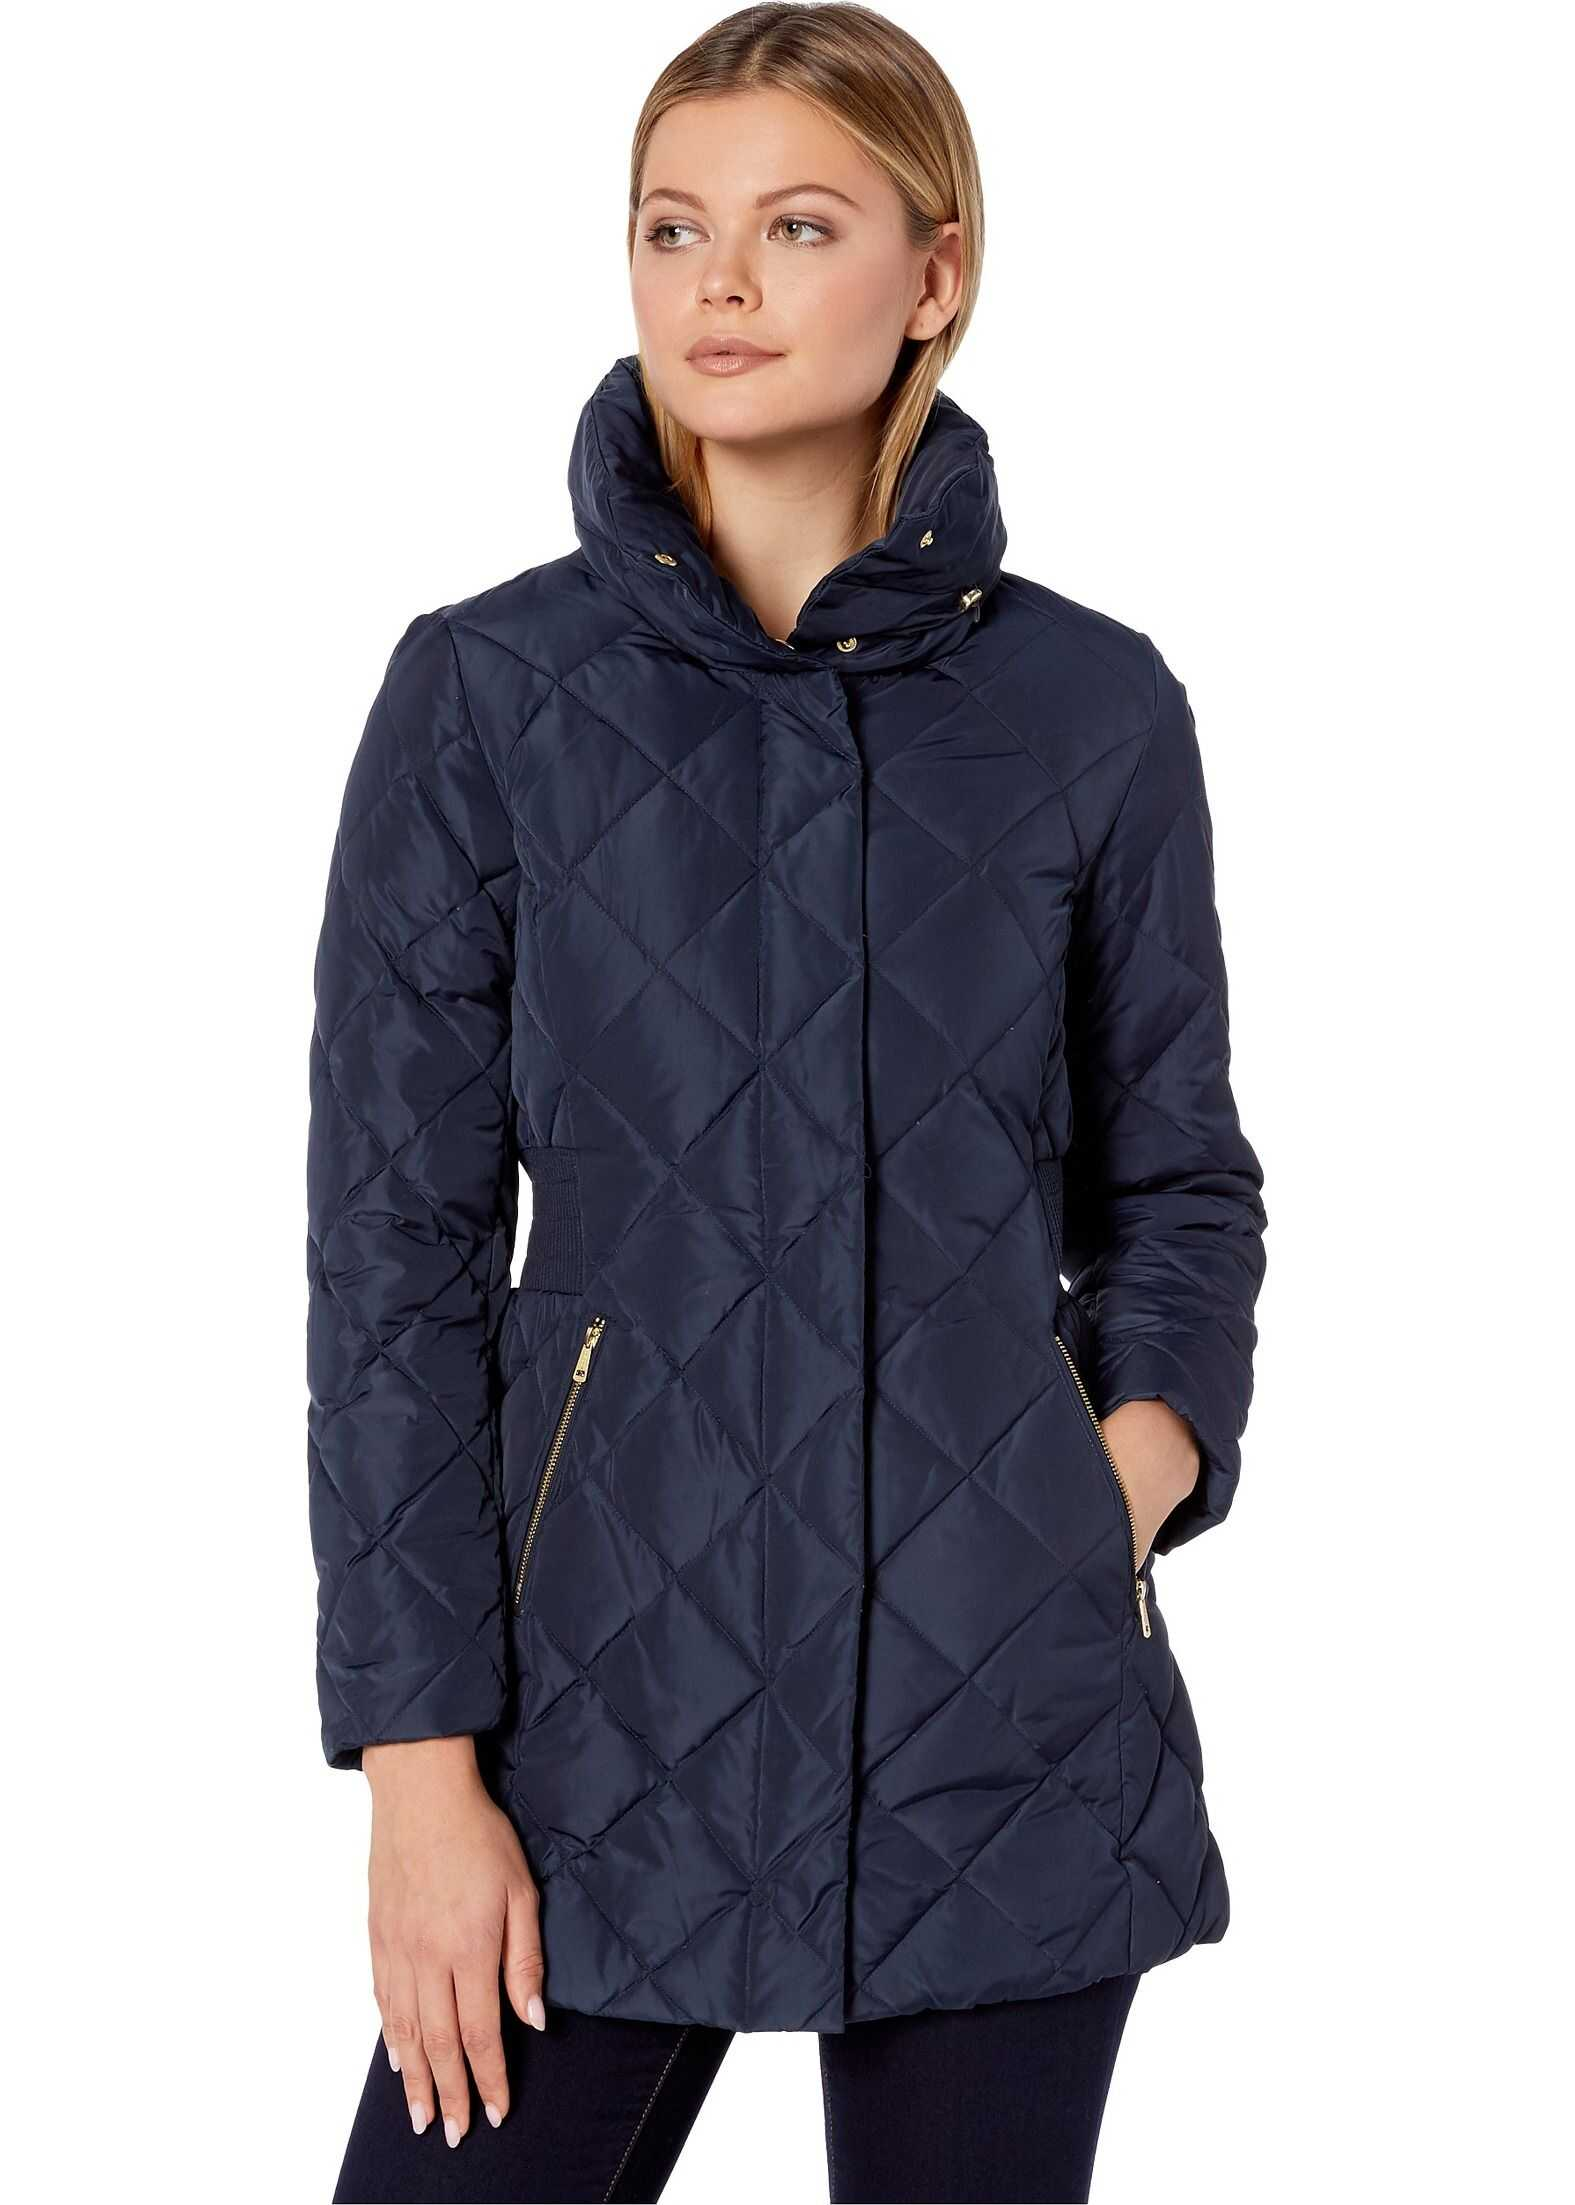 Cole Haan Diamond Quilted Down Jacket Navy